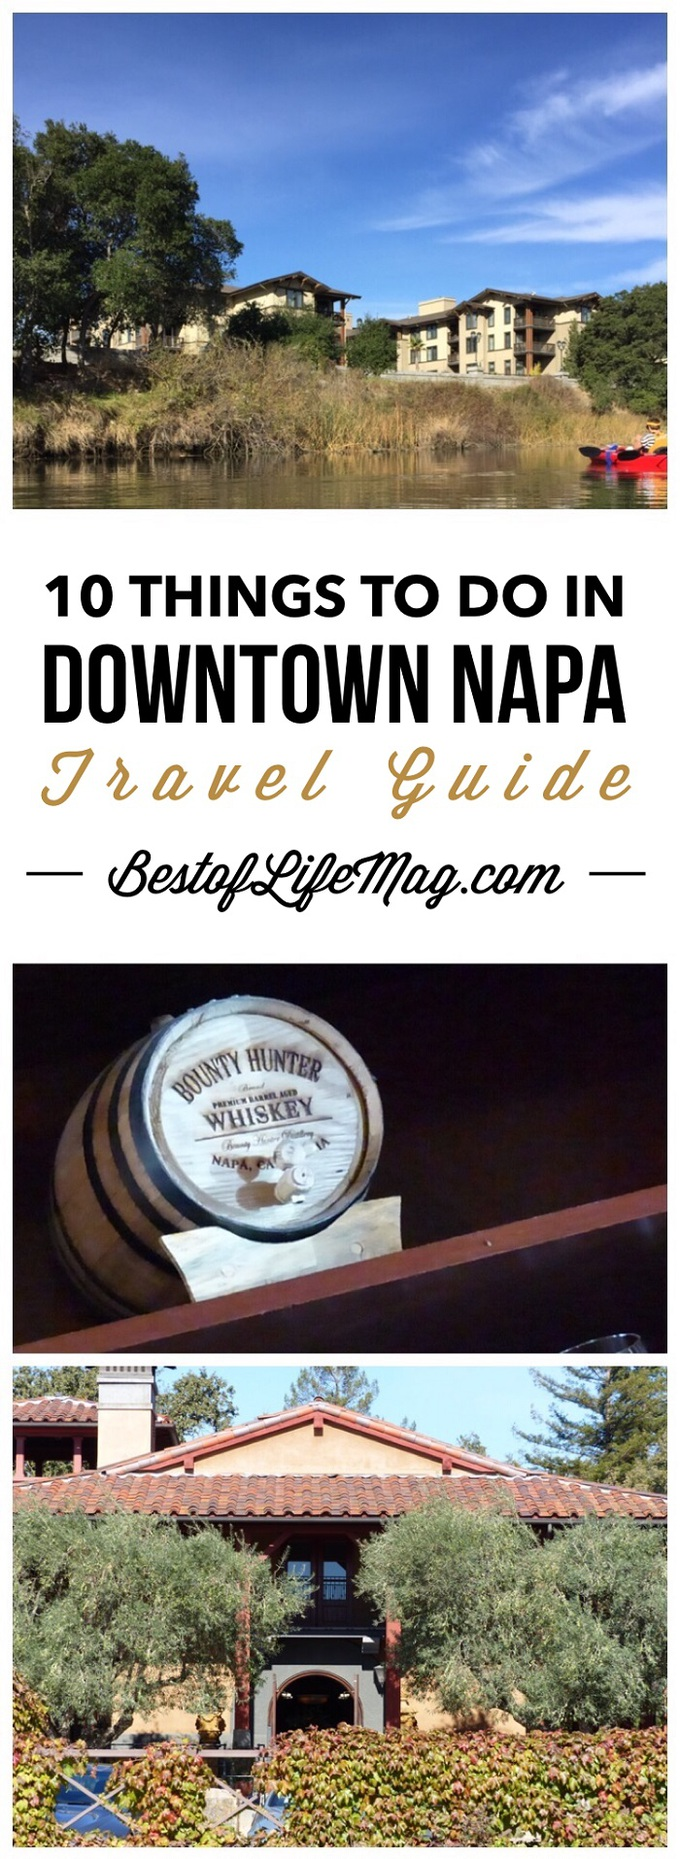 Visiting Downtown Napa? We have your list of things to do to make the most of your trip and help you get out of the winery for a bit.